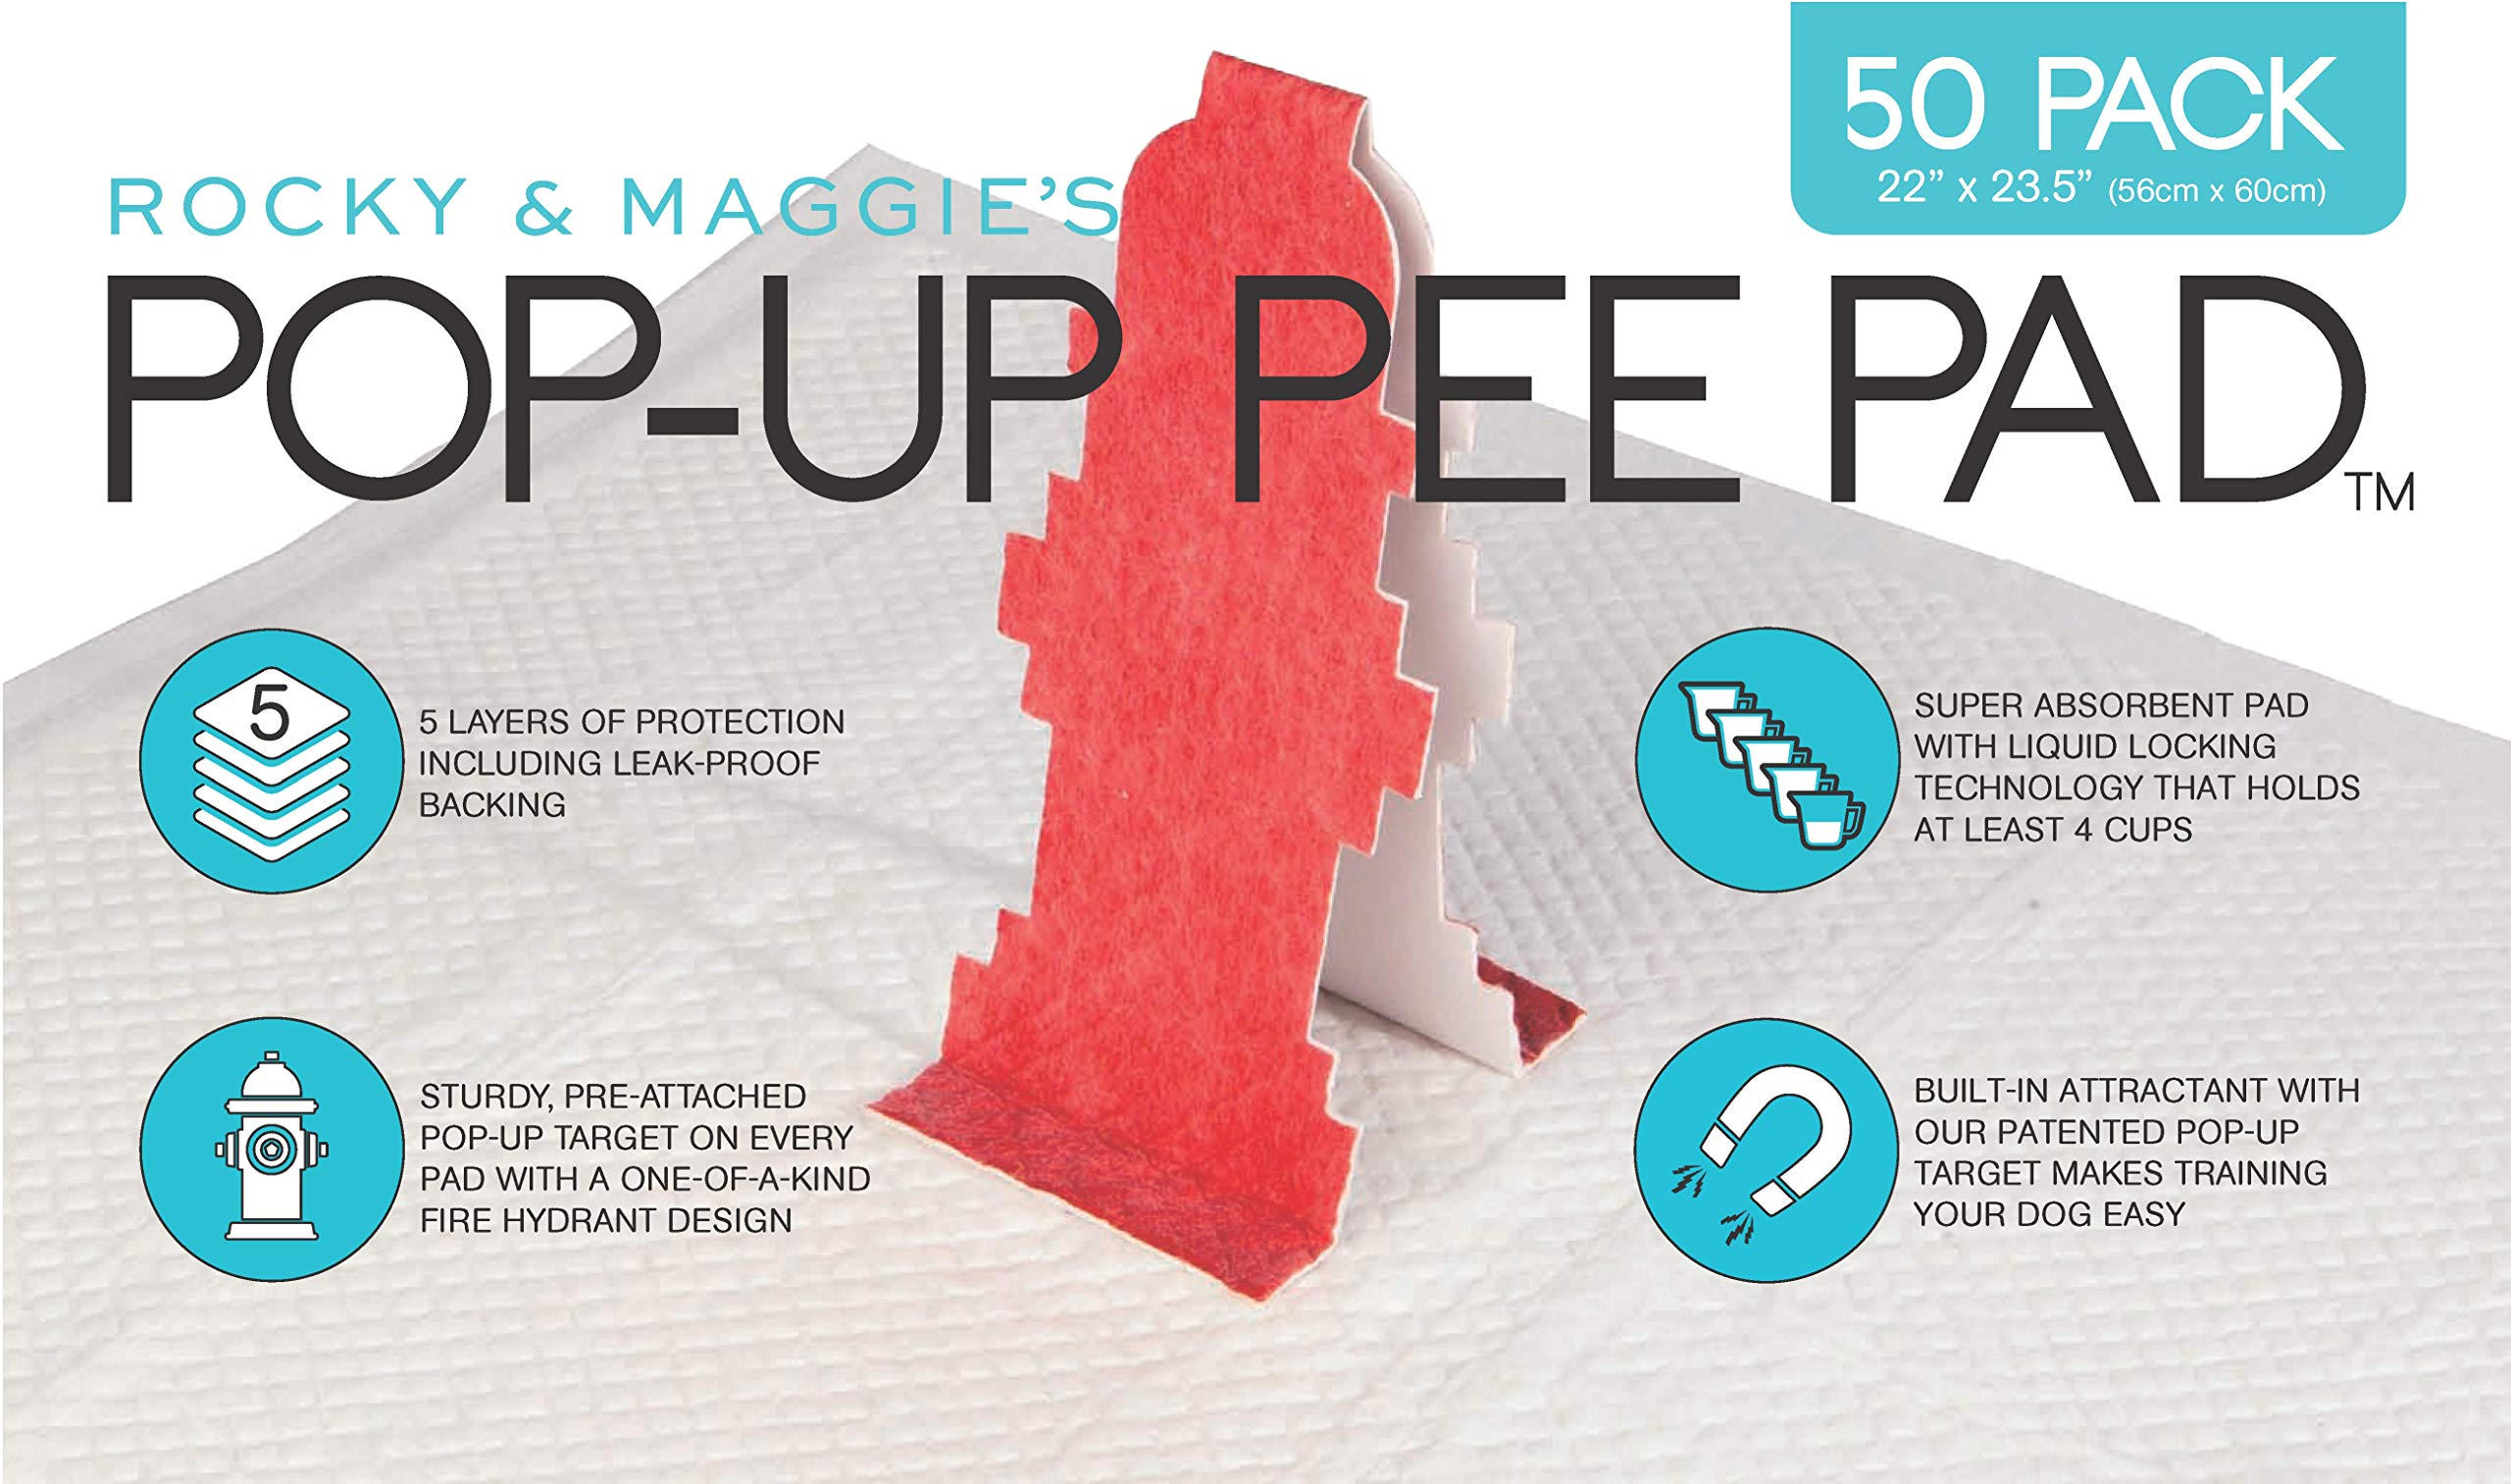 Pop-Up Pee Pad, 50 pads/box by Pop-Up Pee Pad (Image #1)